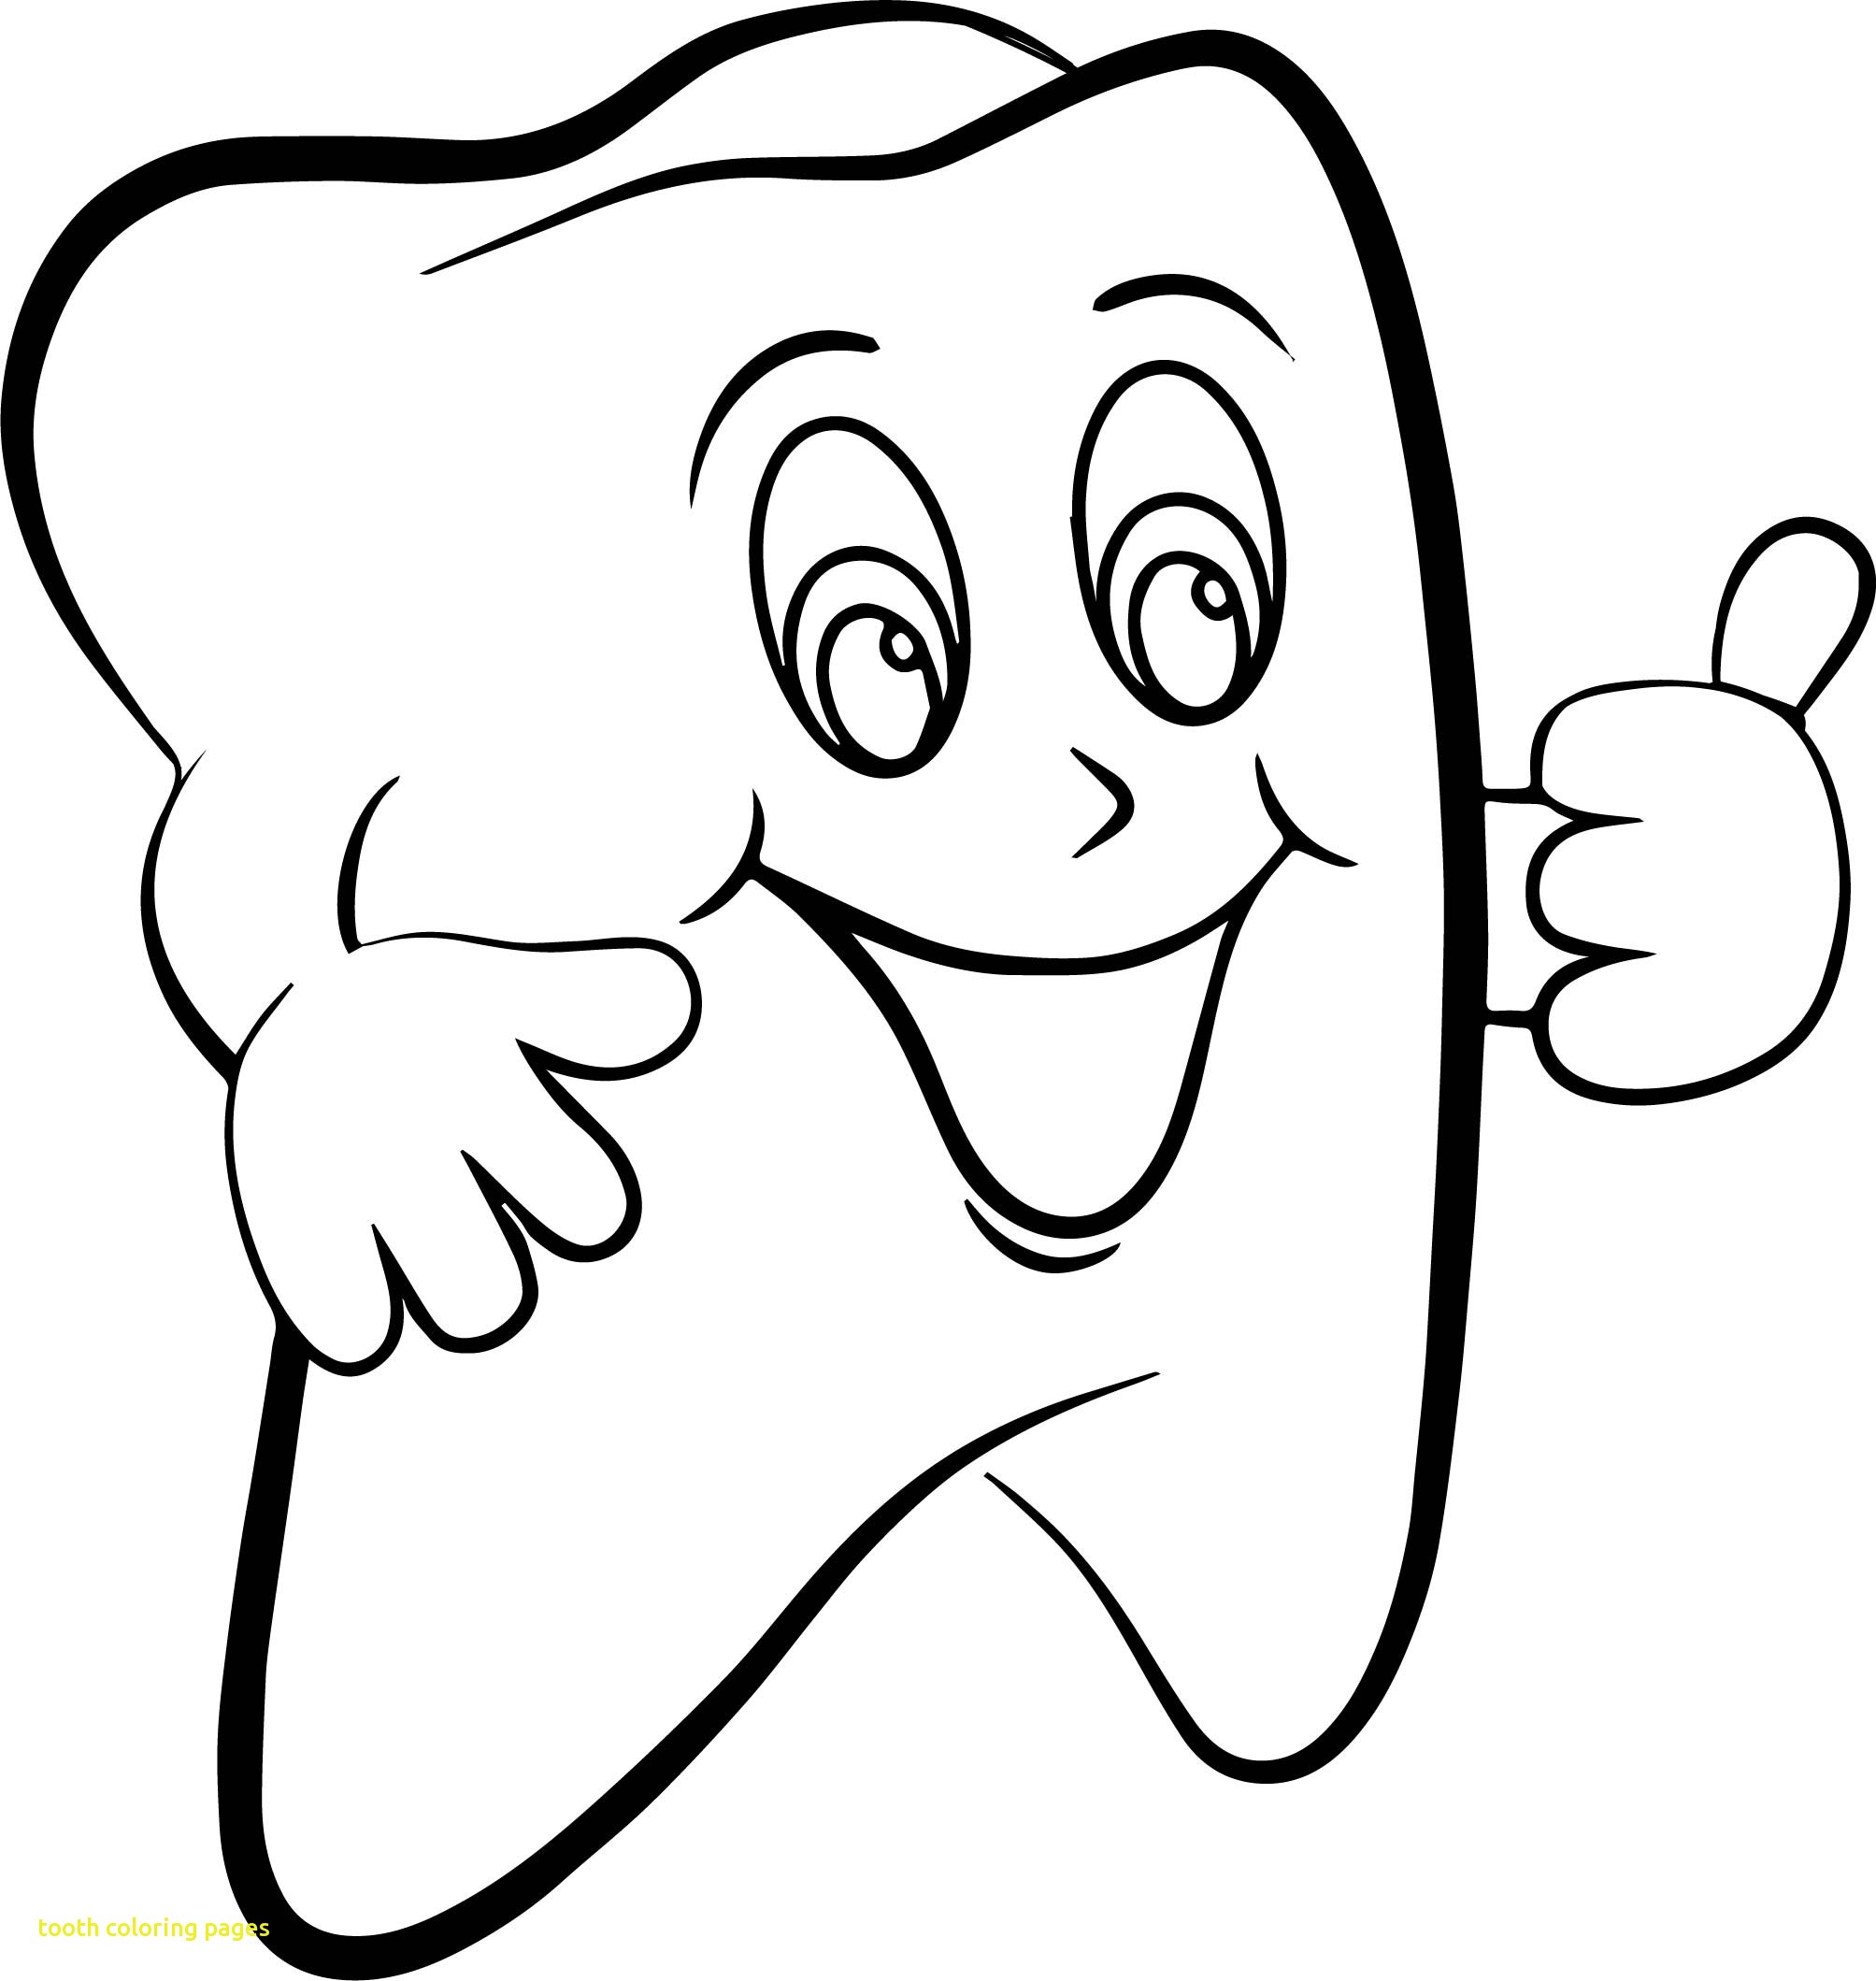 Tooth Coloring Pages at GetDrawings.com | Free for personal ...